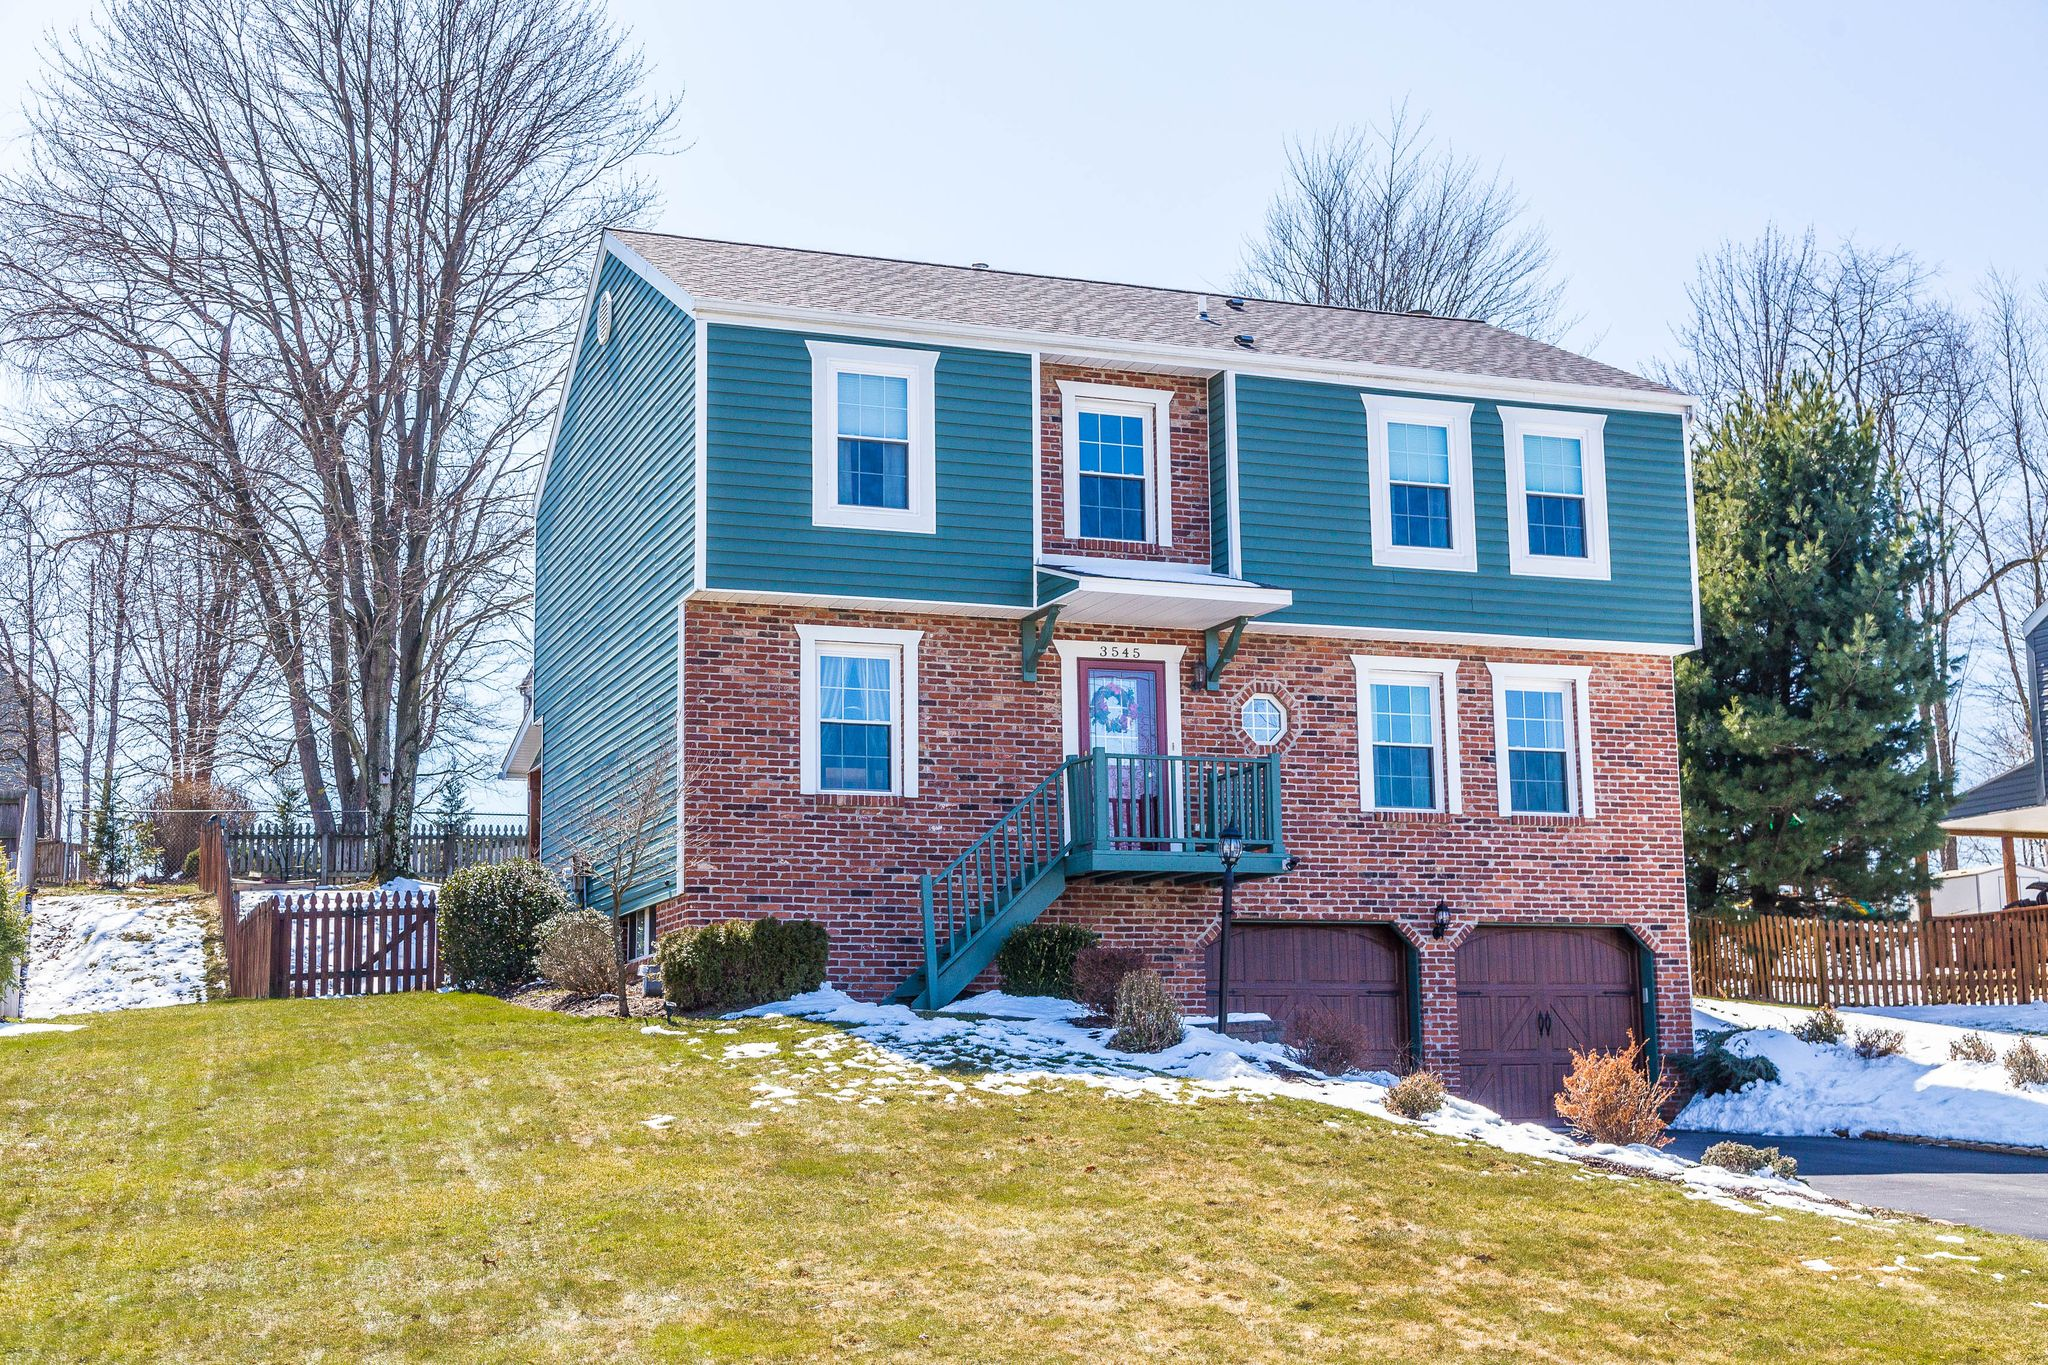 Right Here is the New Picture Of Patio Homes for Sale Allegheny County Pa